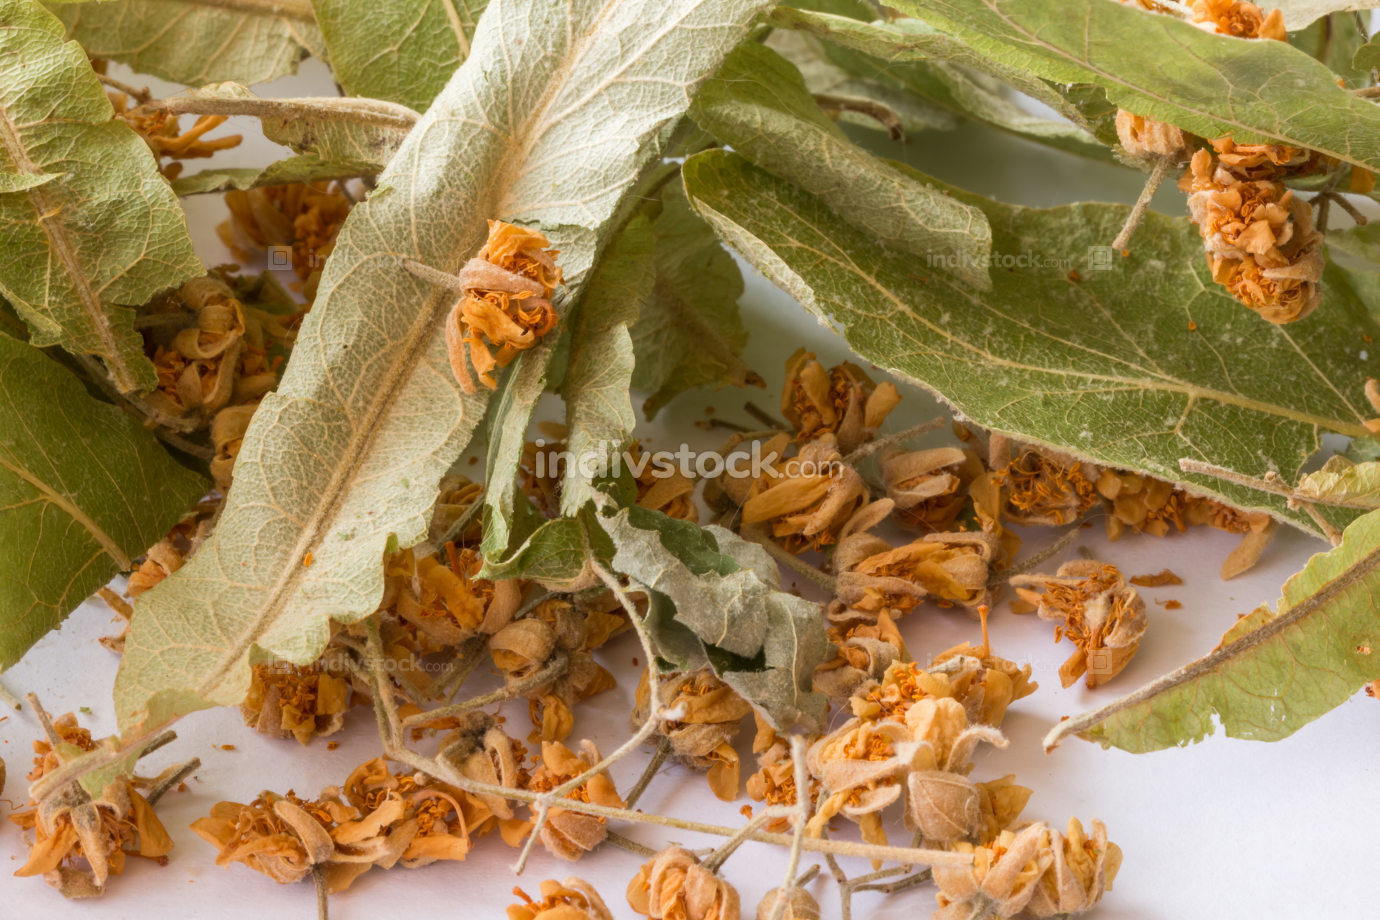 Dry linden flowers on white background